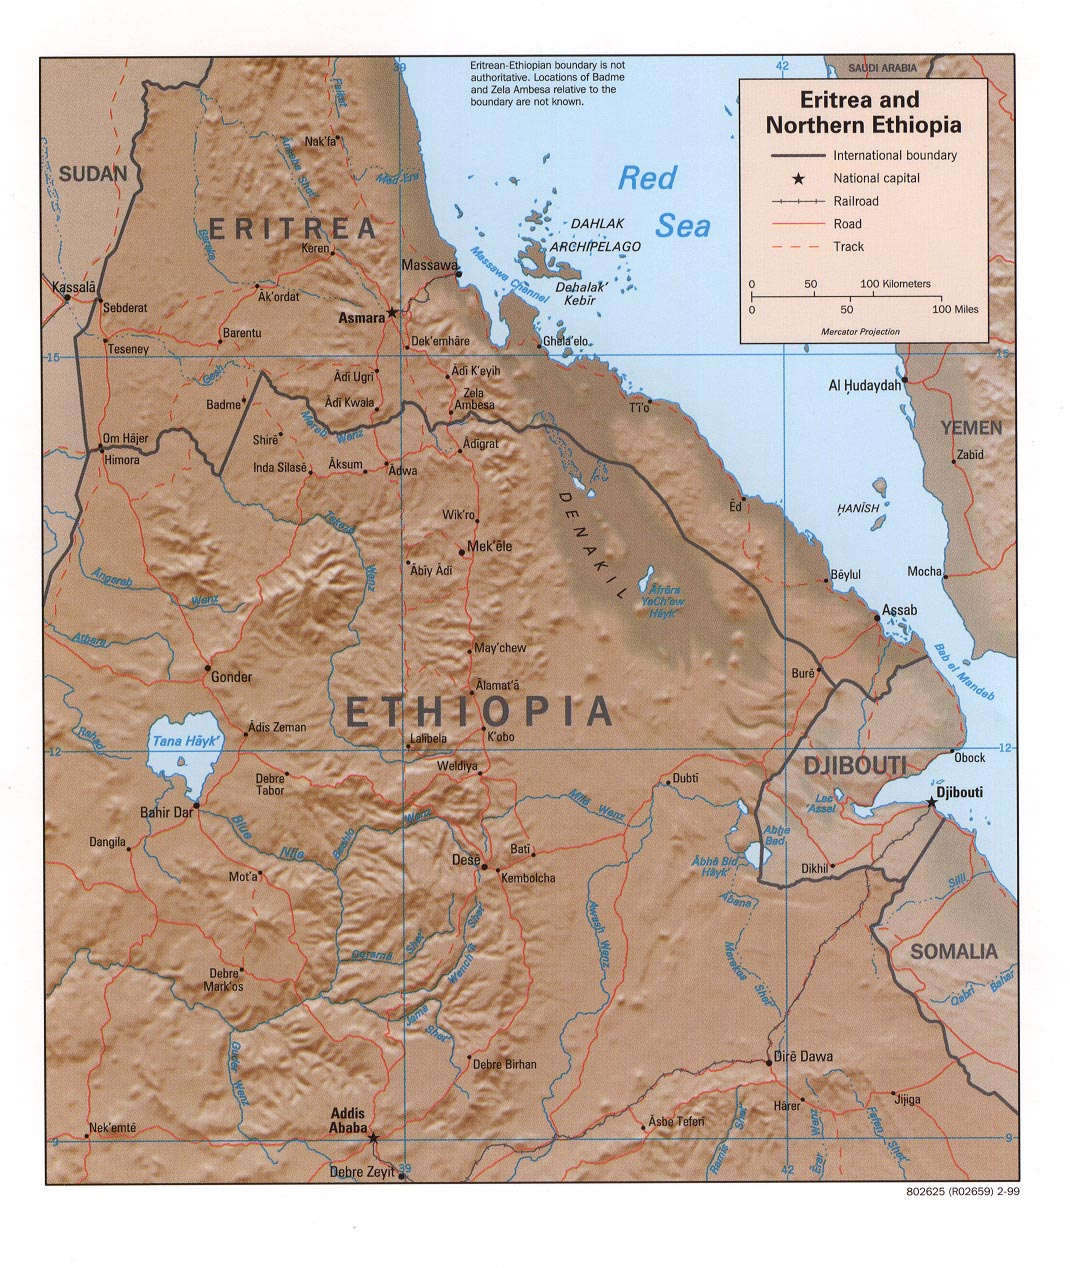 Eritrea maps eritrea and northern ethiopia shaded relief map 1999 321k gumiabroncs Gallery